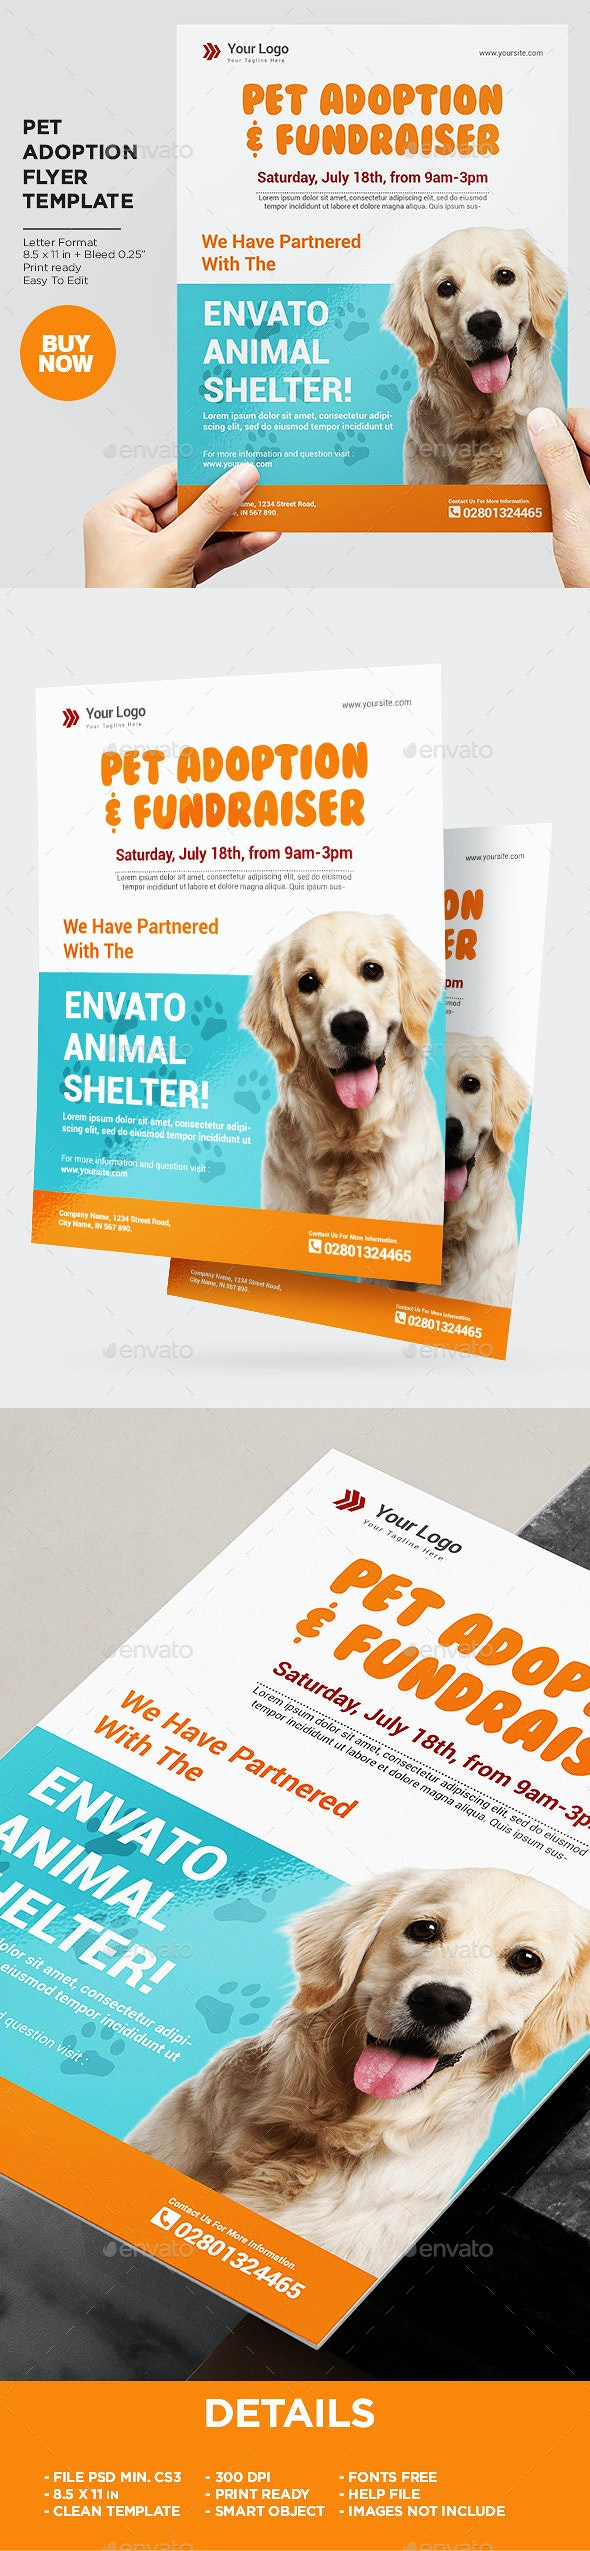 Pet Adoption Sevice Flyer Template - Flyers Print Templates